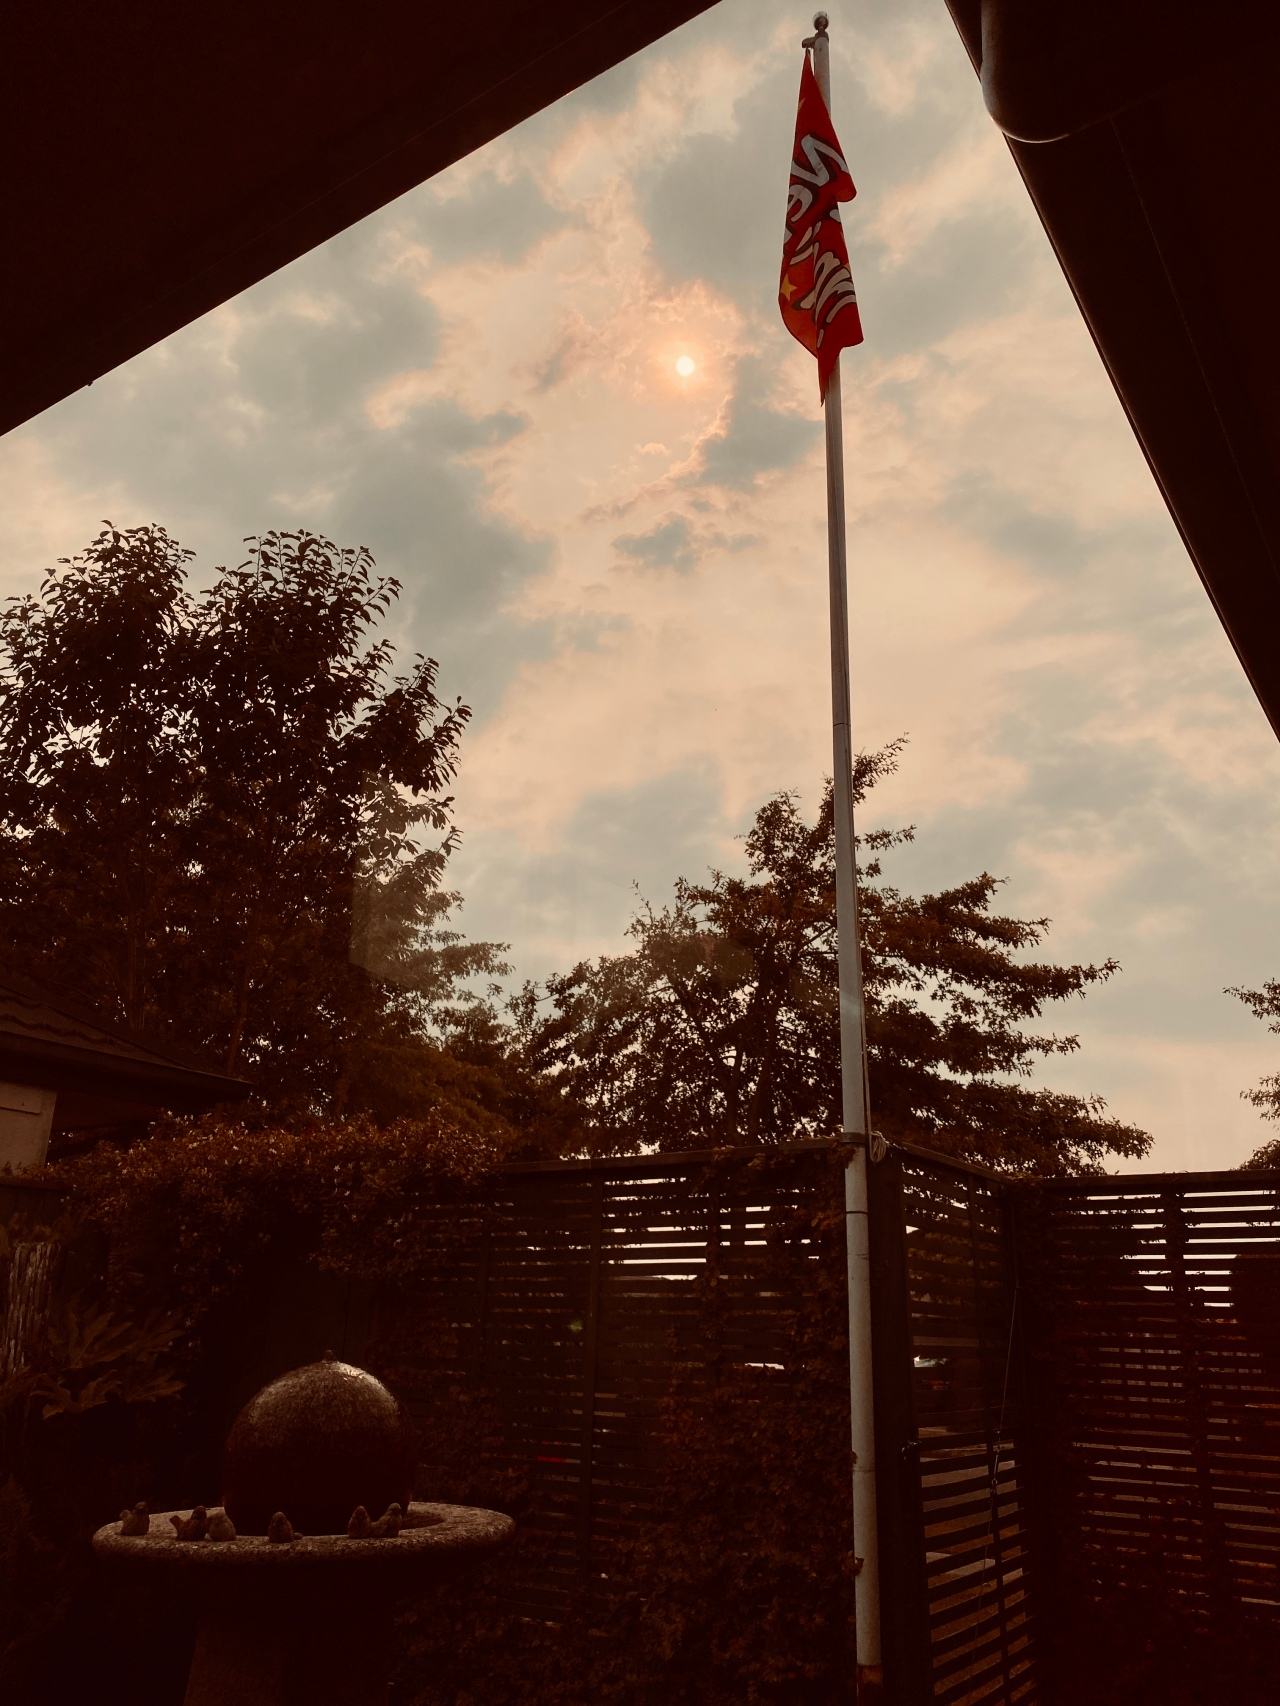 Flagpole and yard with sun in the yellow sky on 1 January 2020